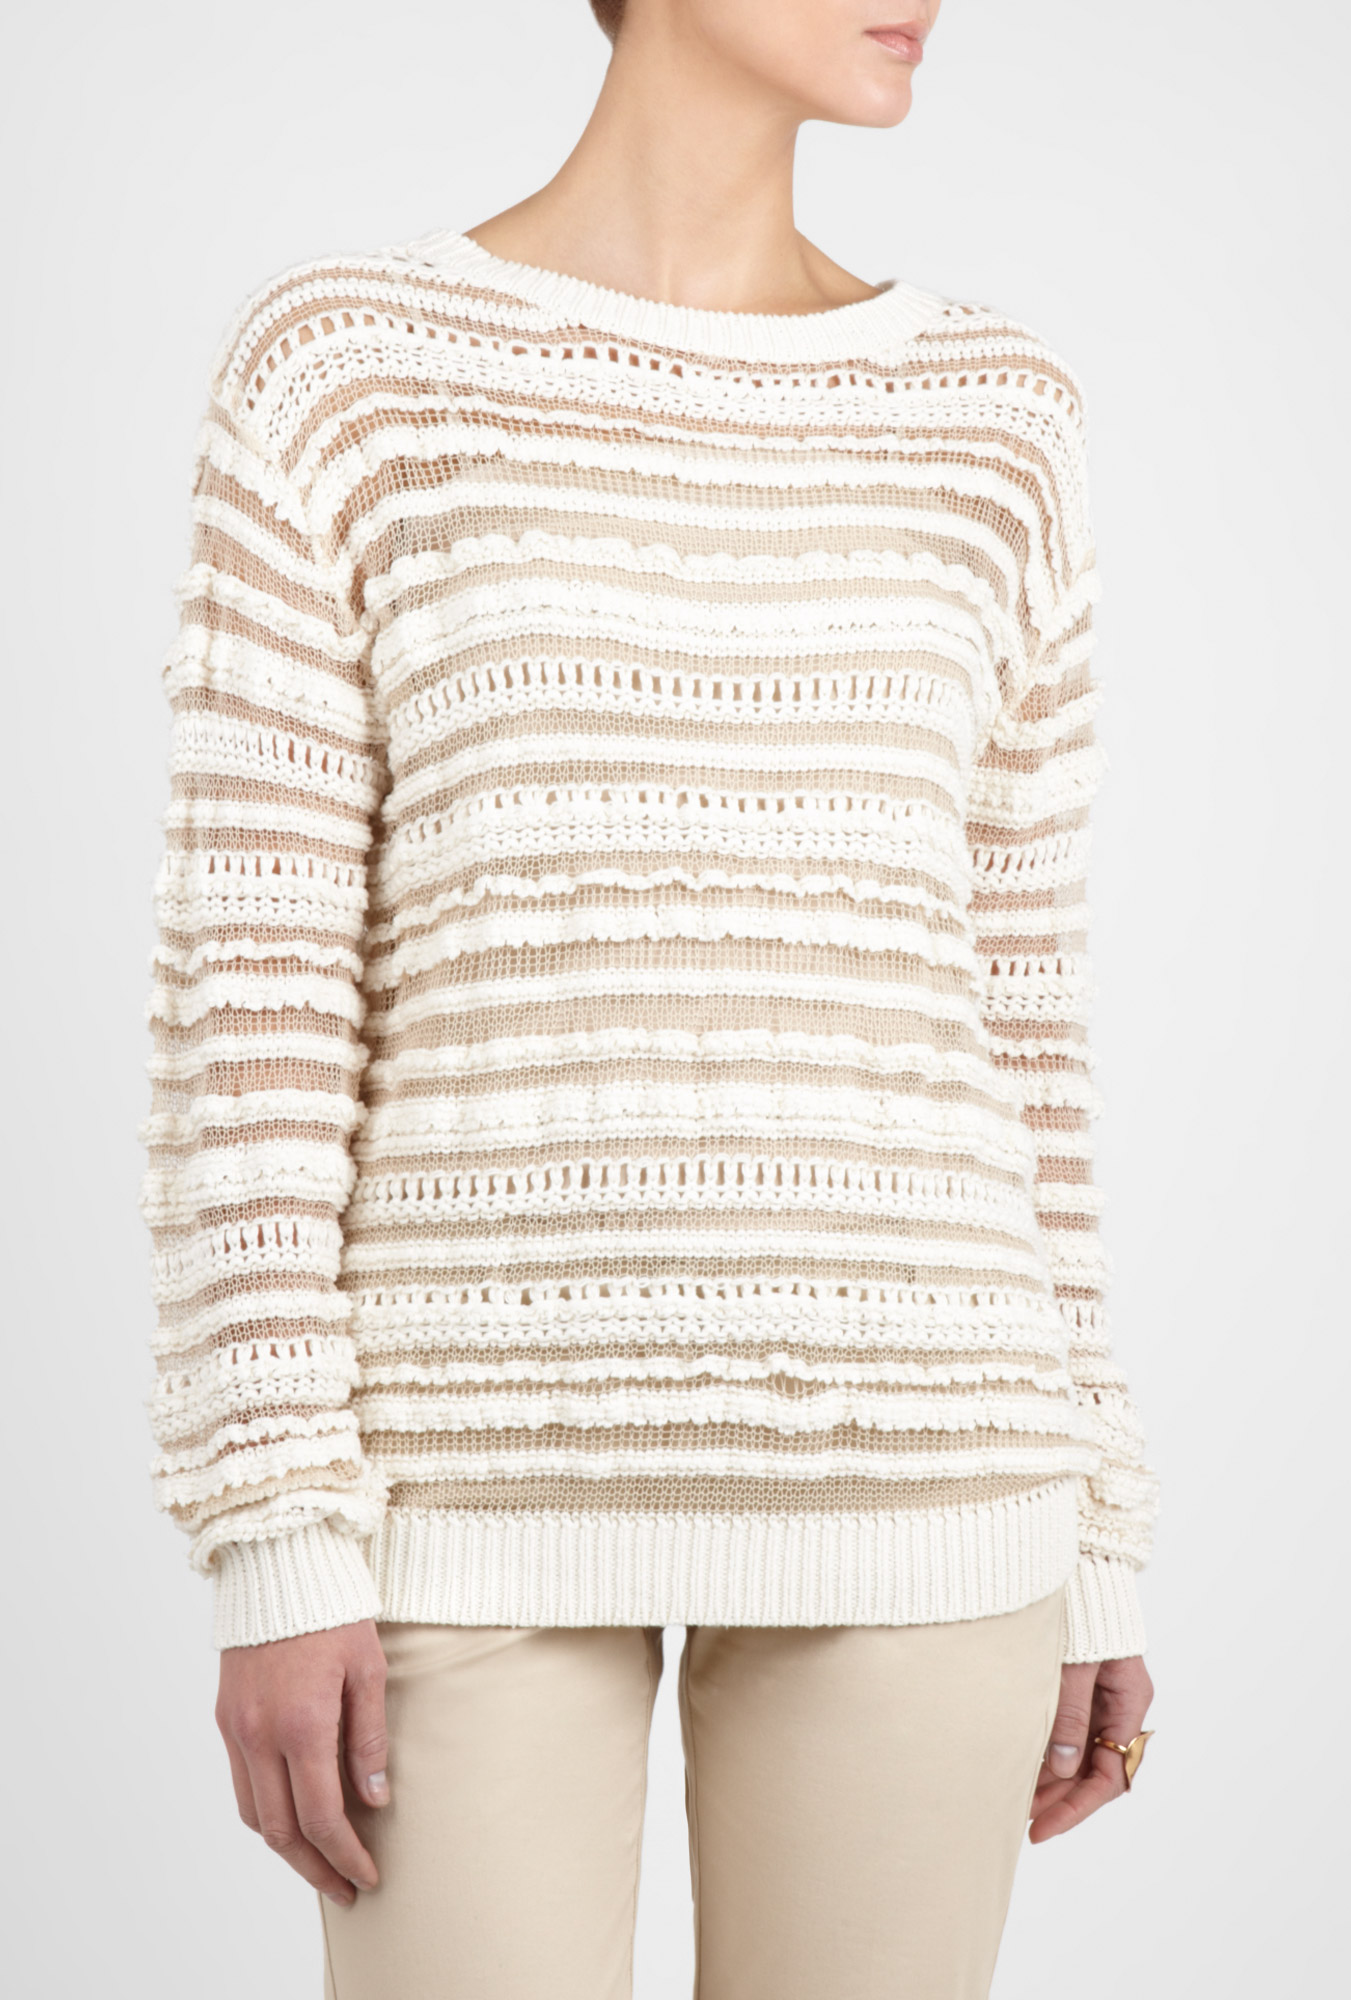 Bruno Athe | White Loose Open Knit Sweater by Vanessa Bruno Athe